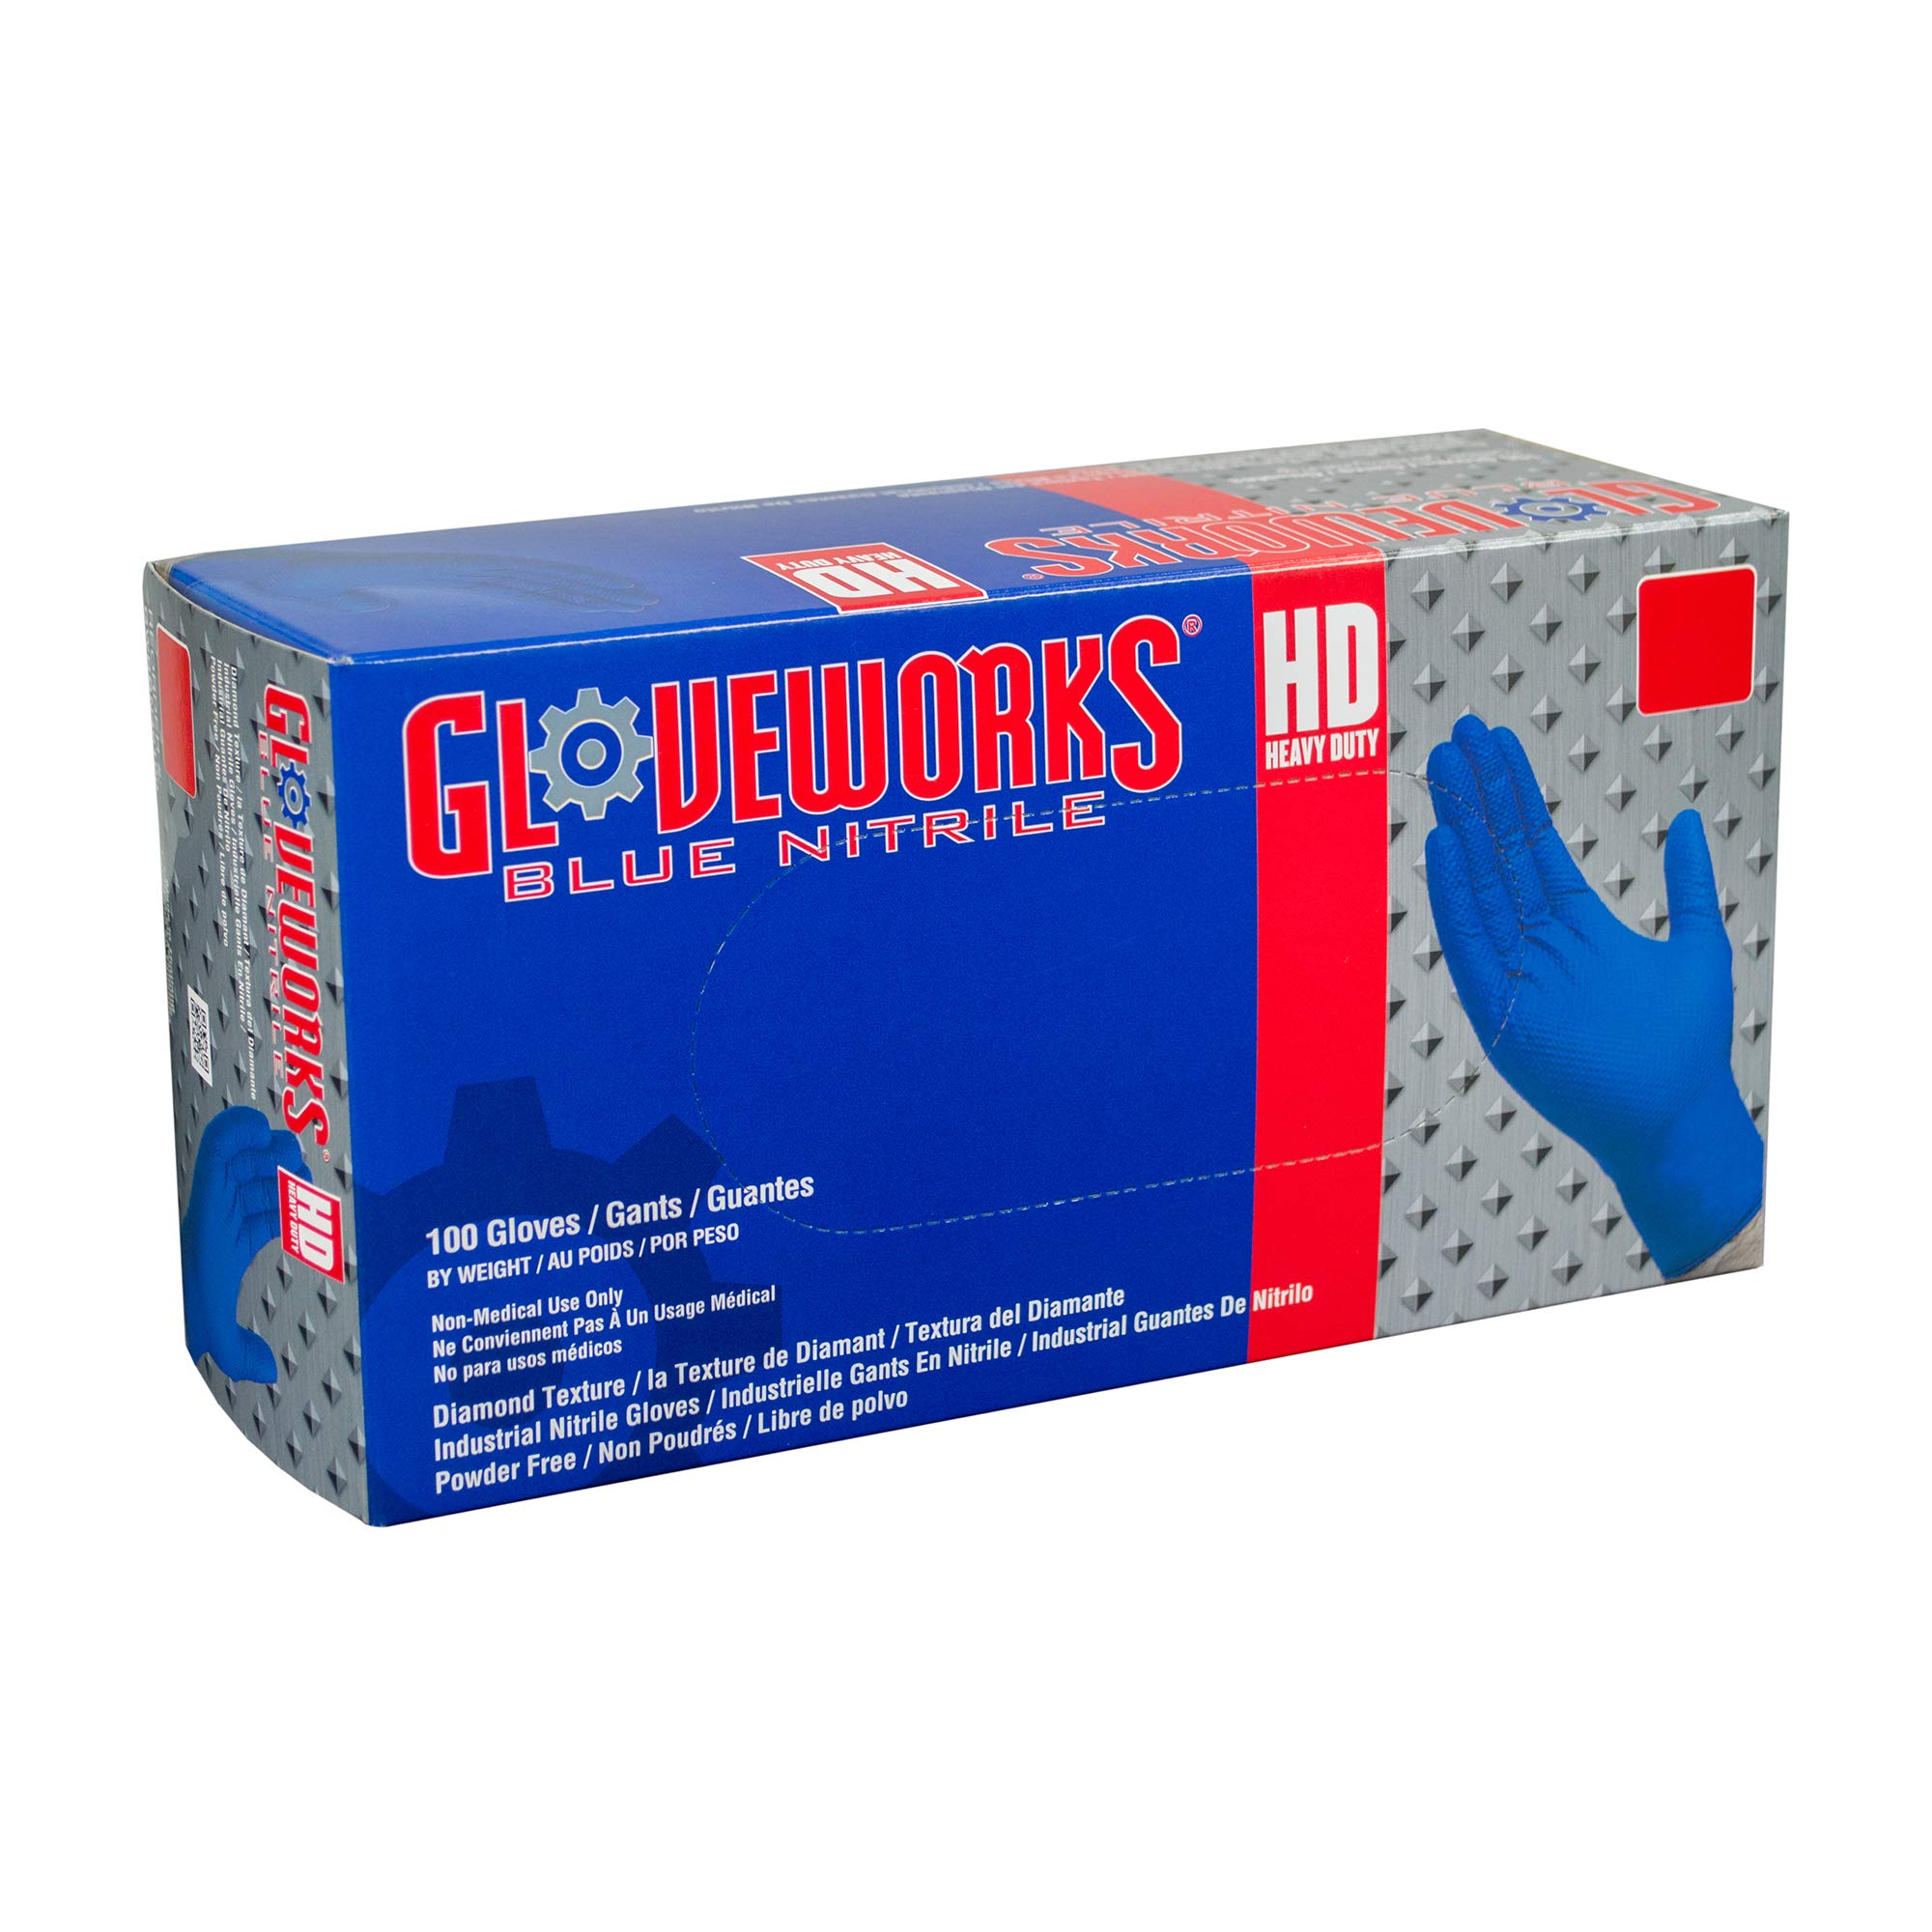 AMMEX - GWRBN49100 - Nitrile Gloves - Gloveworks - HD, Disposable, Powder Free, 6 mil, XXLarge, Royal Blue (Case of 1000) by Ammex (Image #7)